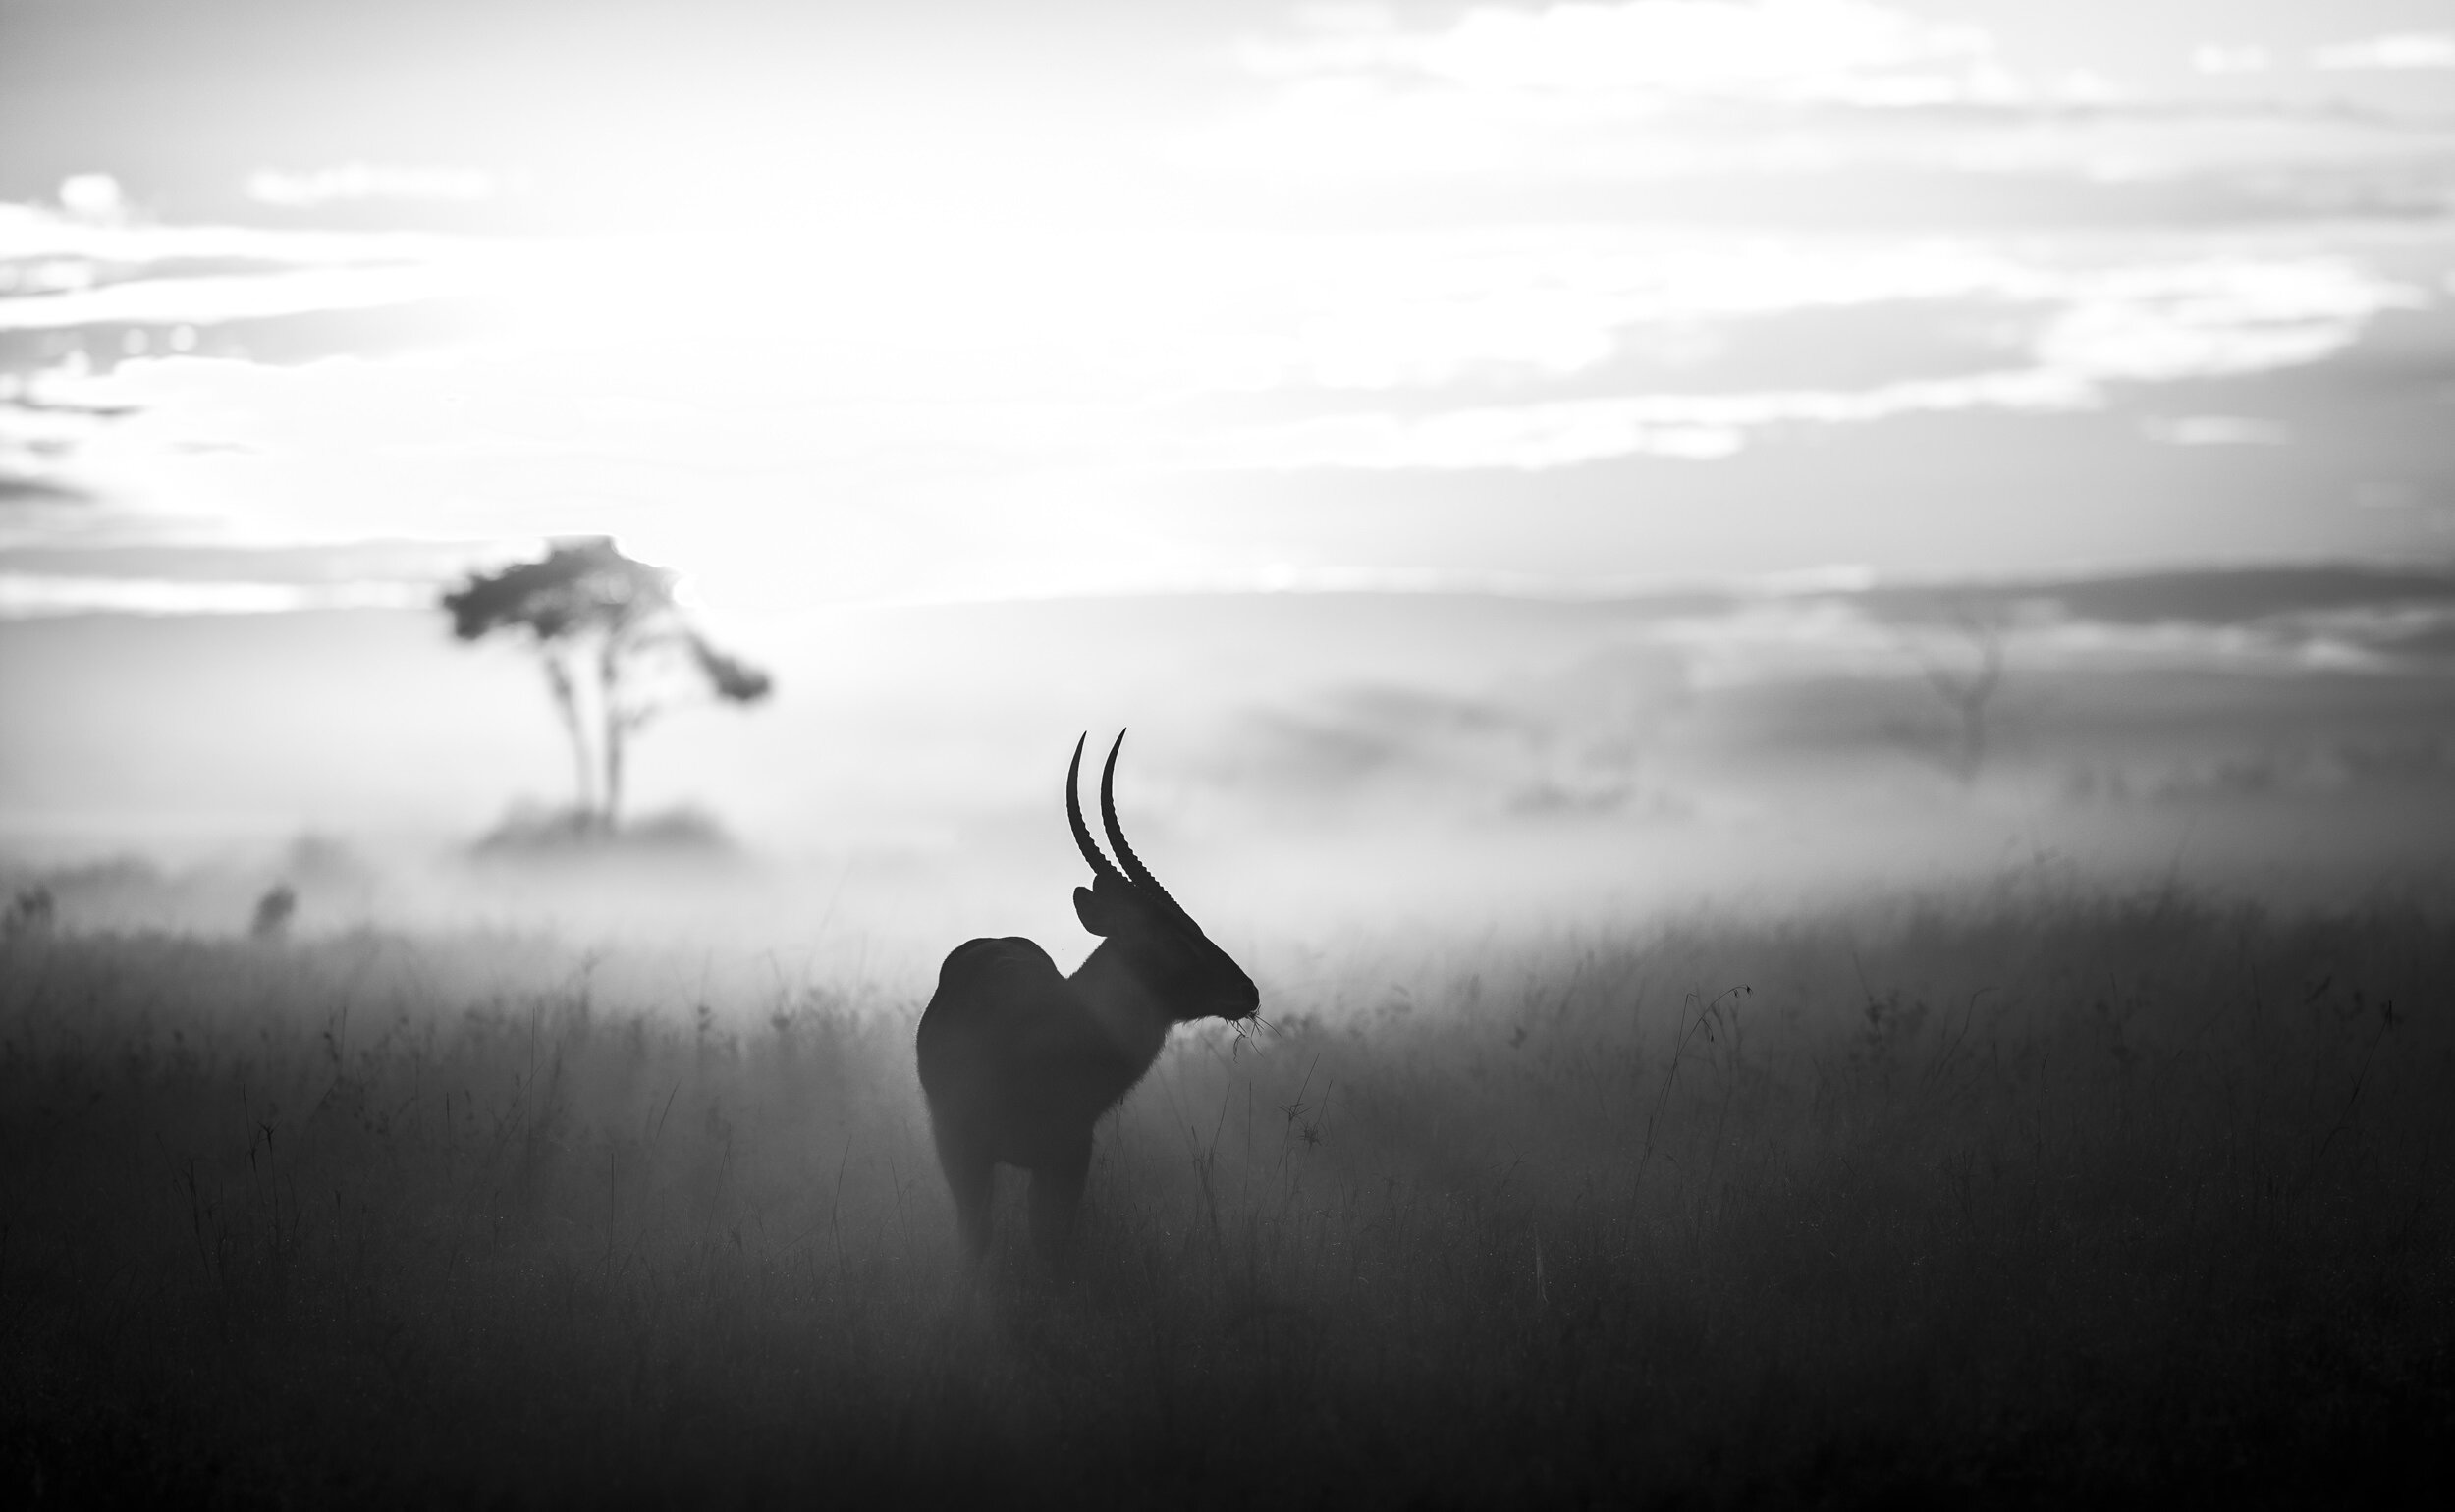 Africa in the Mist (© Graeme Purdy)